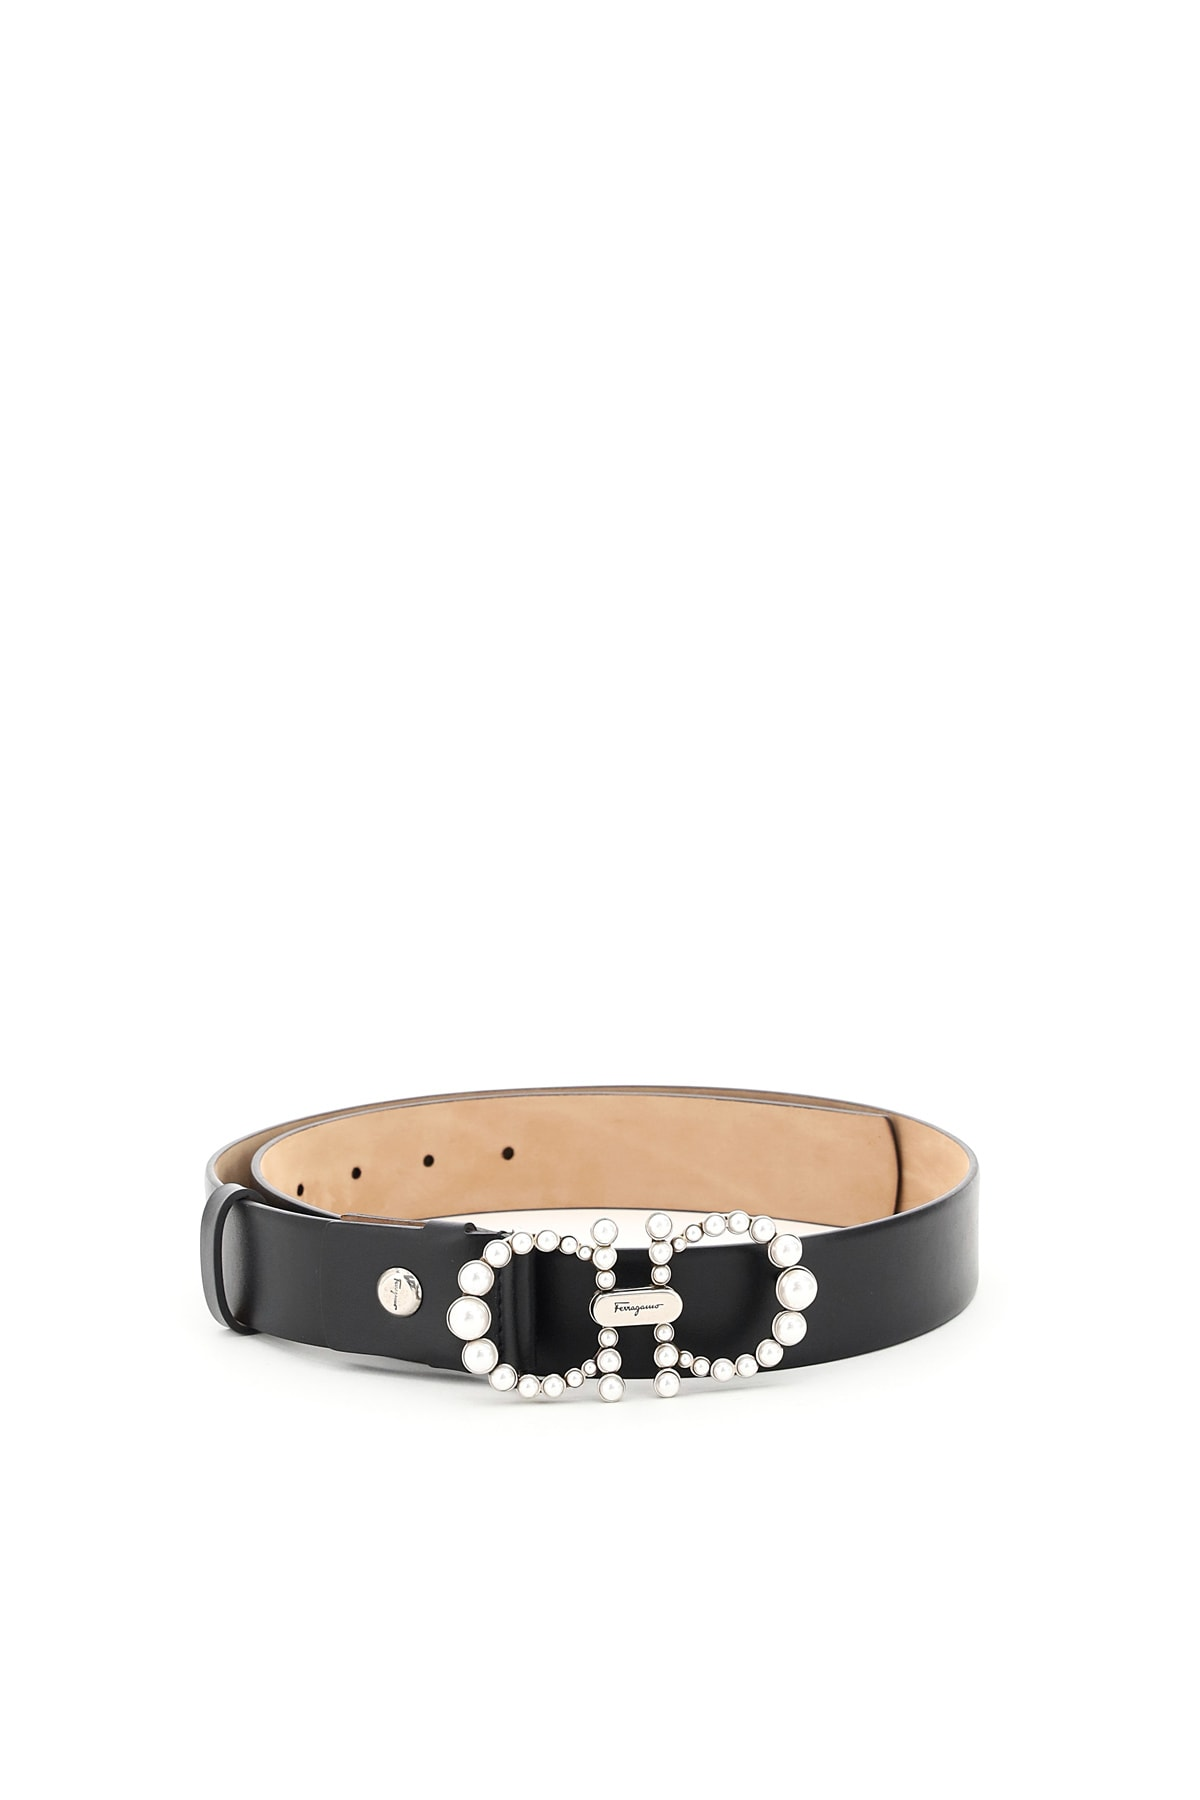 Salvatore Ferragamo GANCINI BELT PEARLS